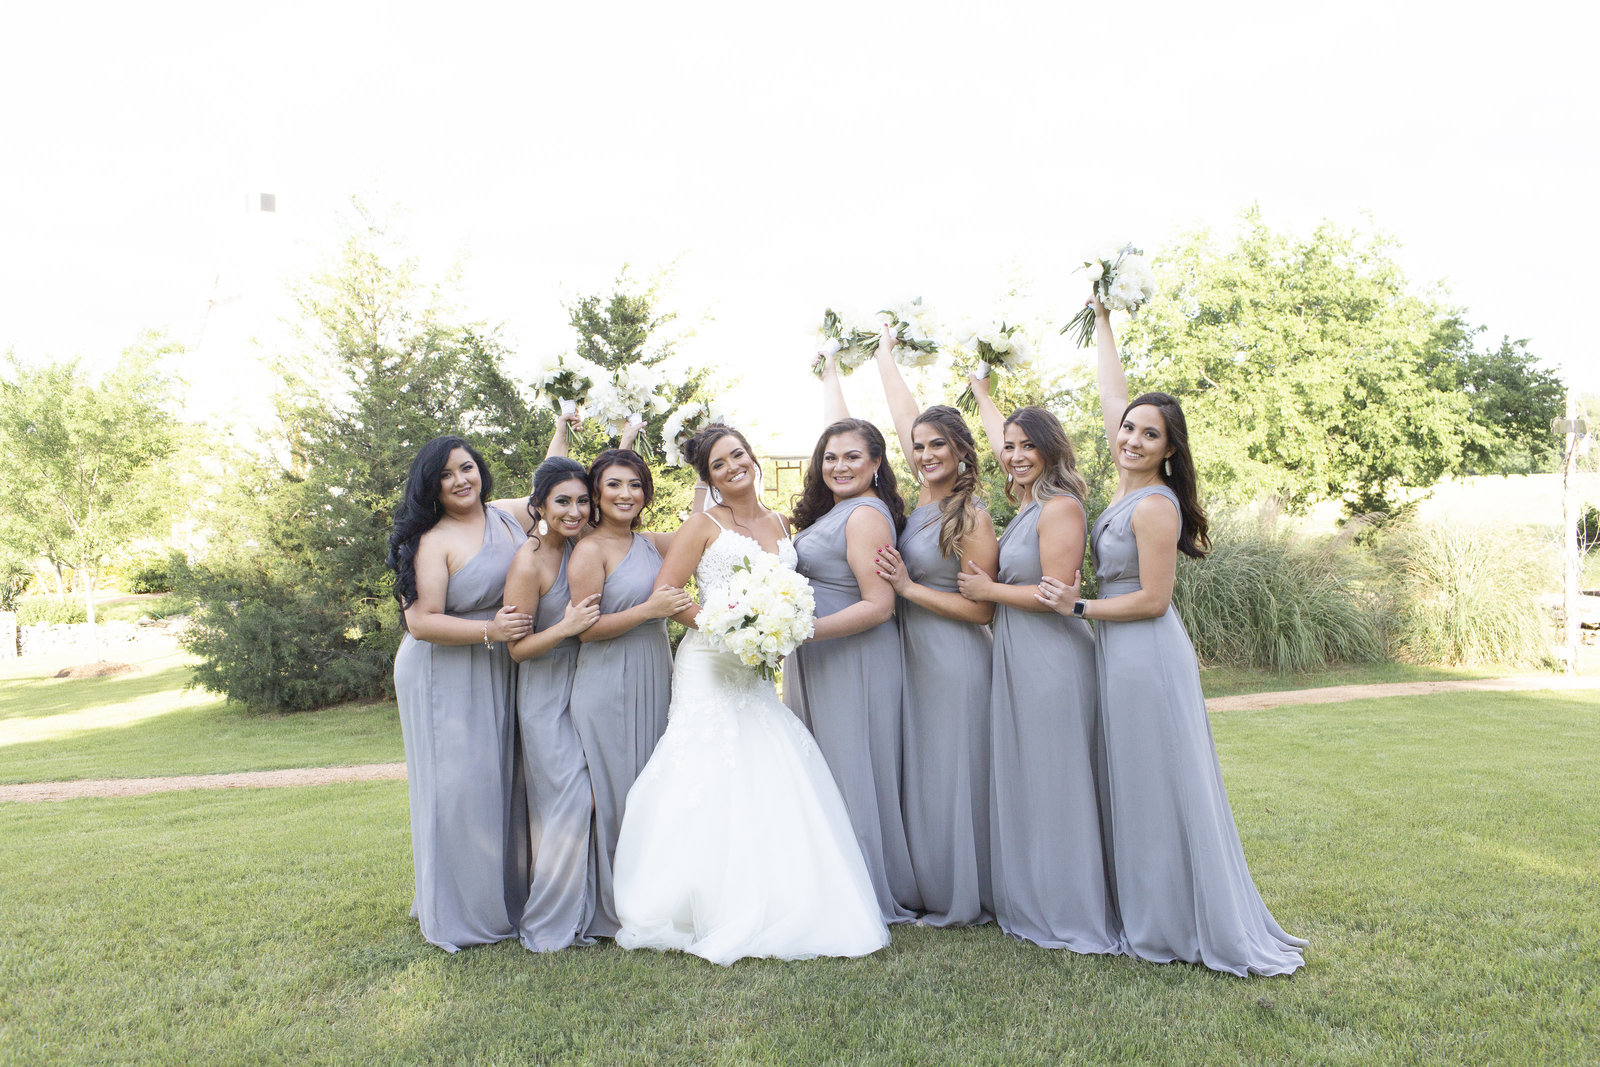 RMPhotography_PenaWedding_May4th2019_Wedding Party + Family-21